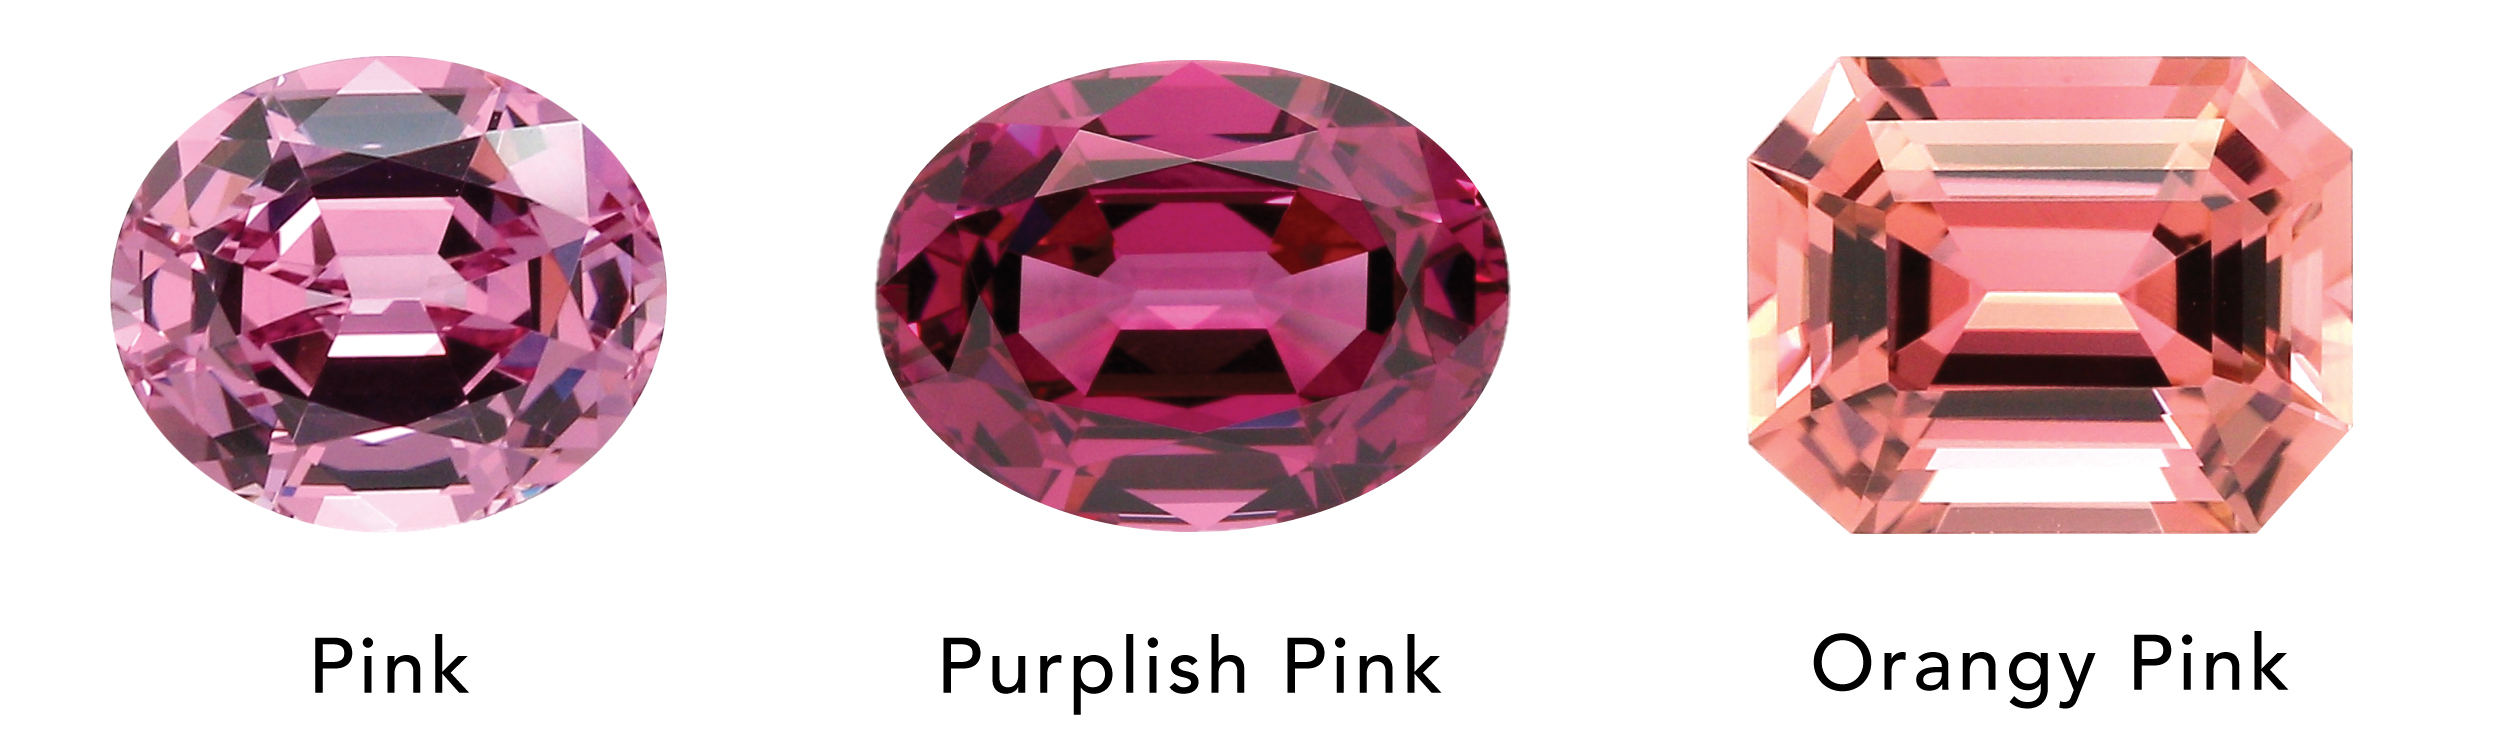 Gemstone Hue and Color